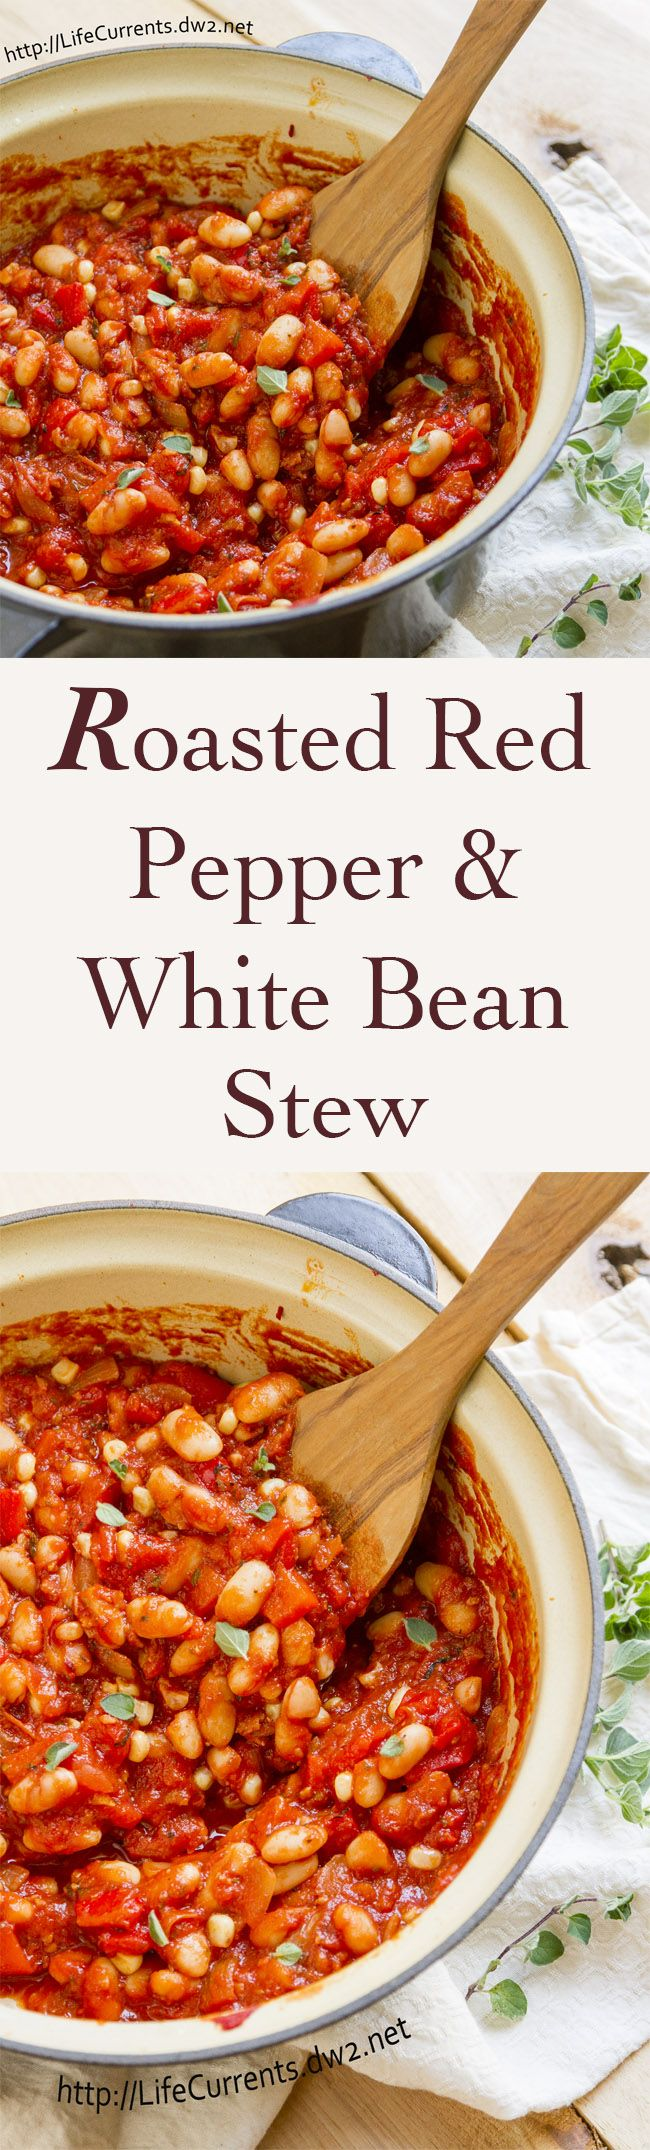 Roasted Red Pepper and White Bean Stew a great vegan & and gluten-free stew that anyone, even meat eaters will adore. Perfect comfort food!